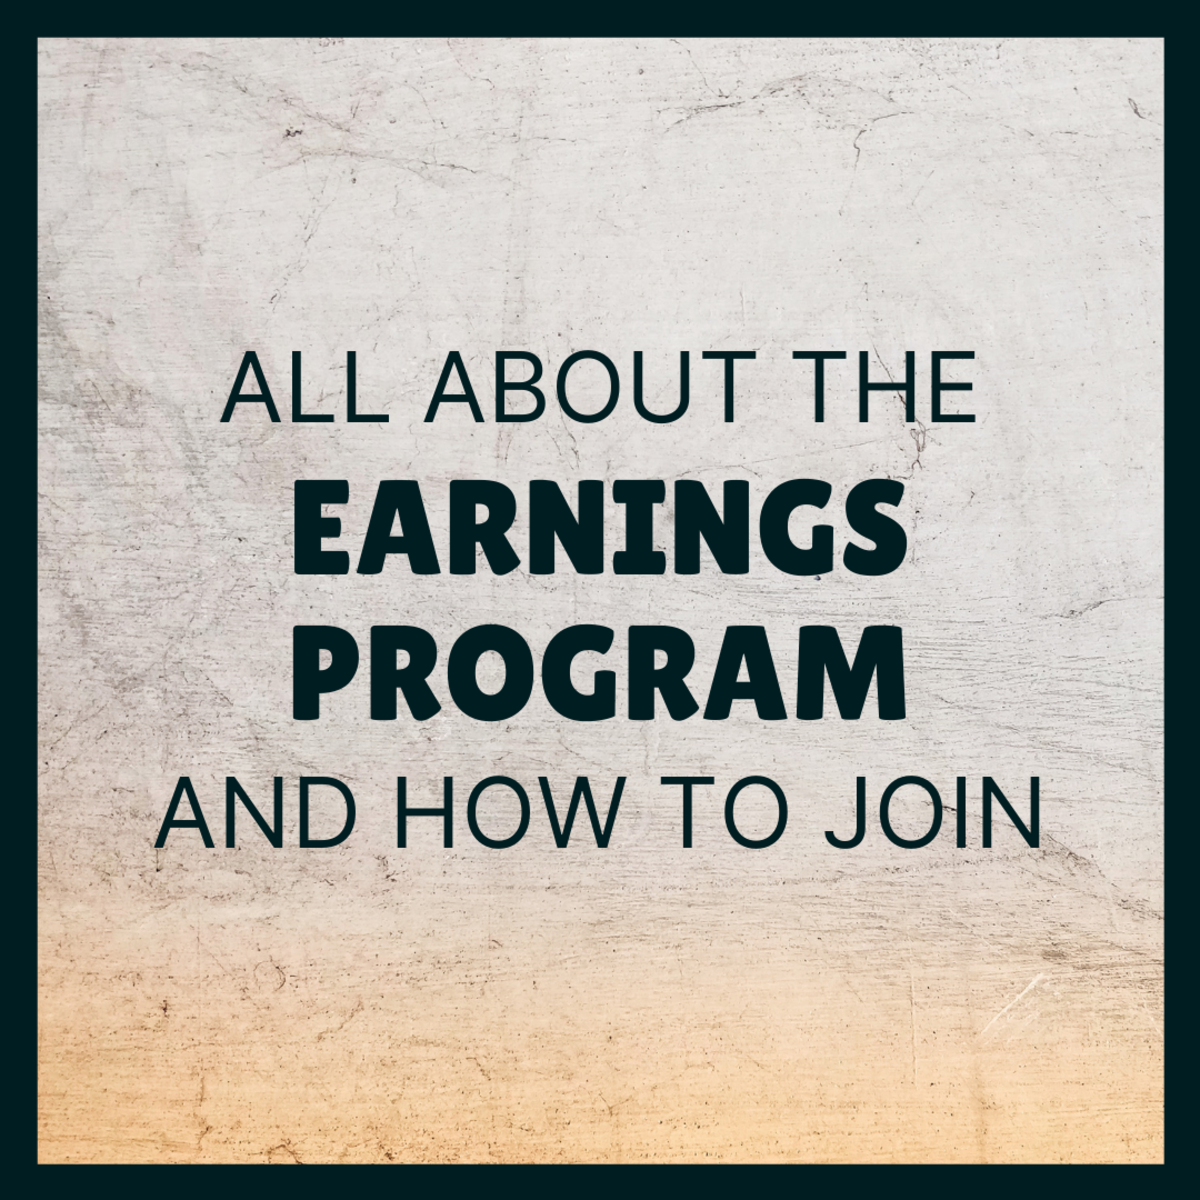 Learn how to sign up for the Earnings Program and how it works.